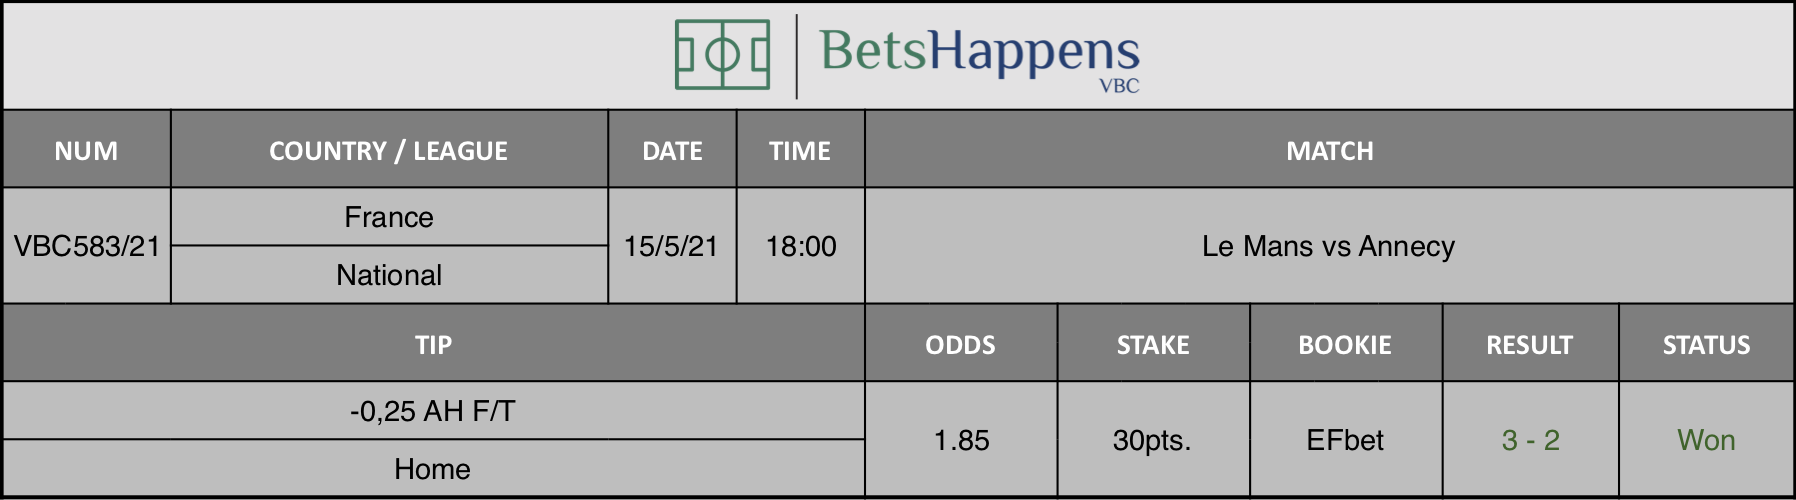 Results of our tip for the Le Mans vs Annecy match where -0,25 AH F/T Home is recommended.